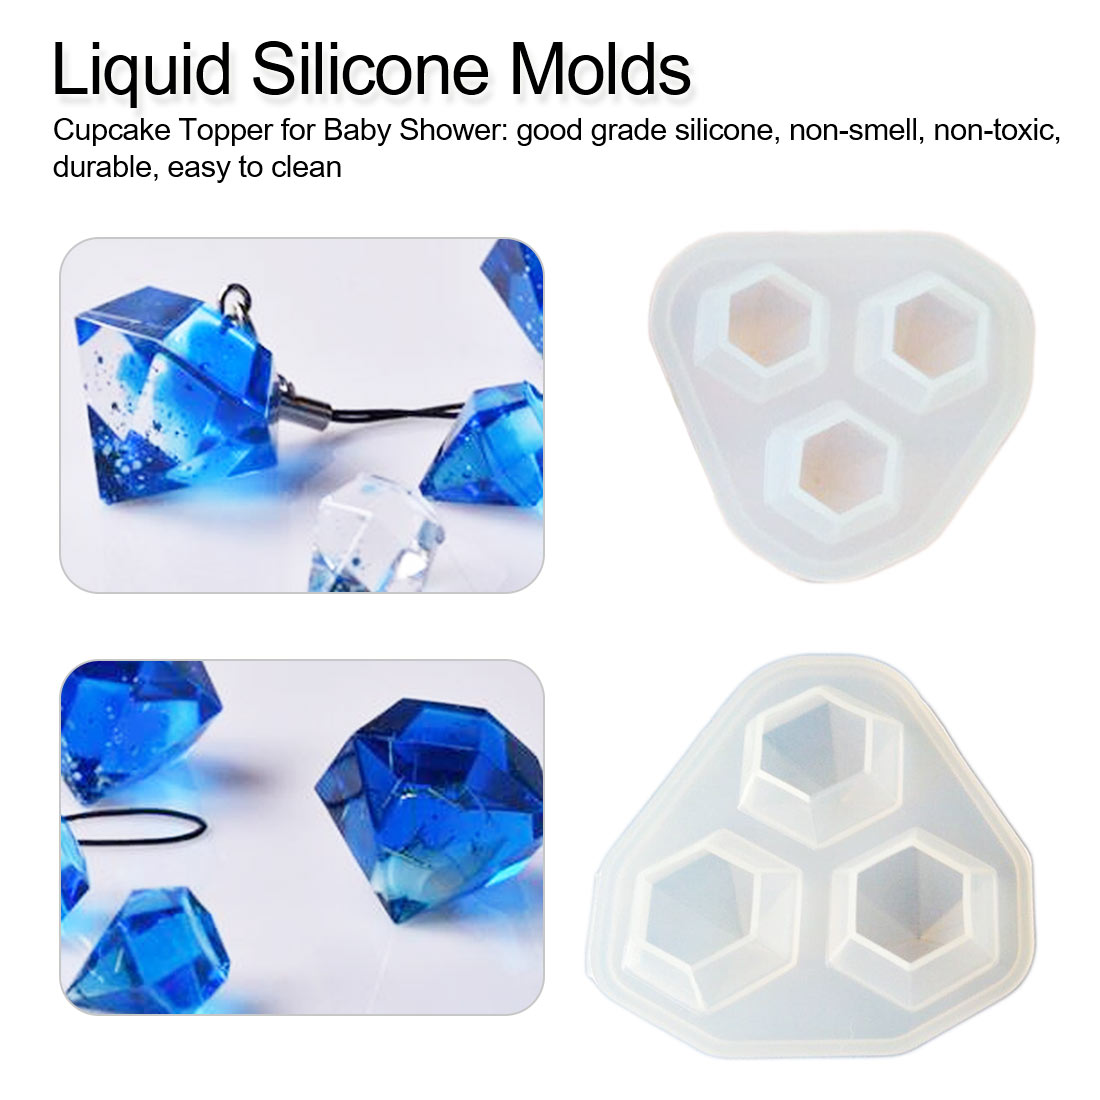 DIY Crystal Epoxy Diamond Silicone Mold Handmade Soap Form Chocolate Mold Candy Bar Fondant Molds For Cake Decorating